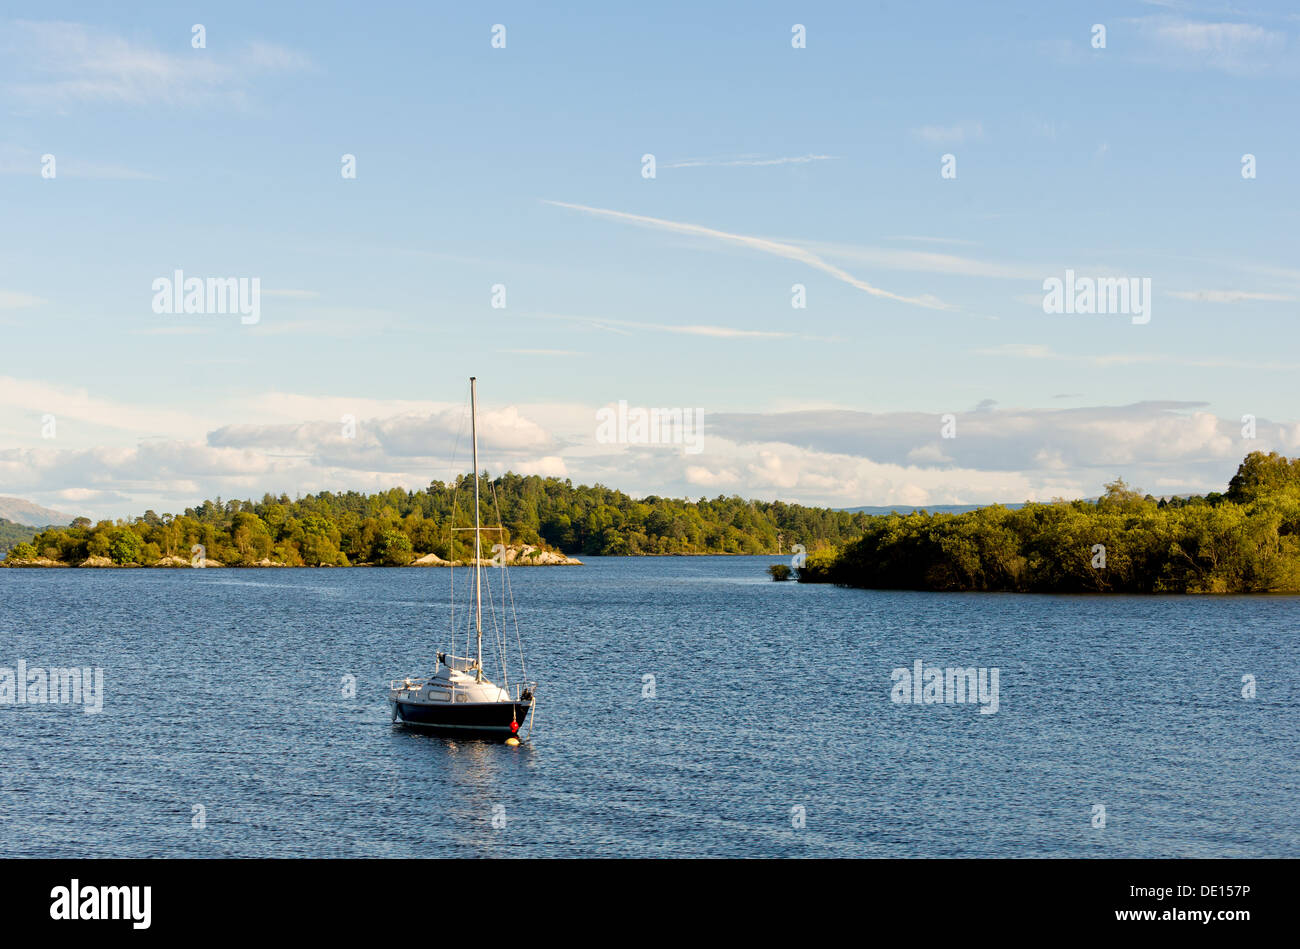 Looking south on Loch Lomond from the village of Luss, Scotland, UK. - Stock Image